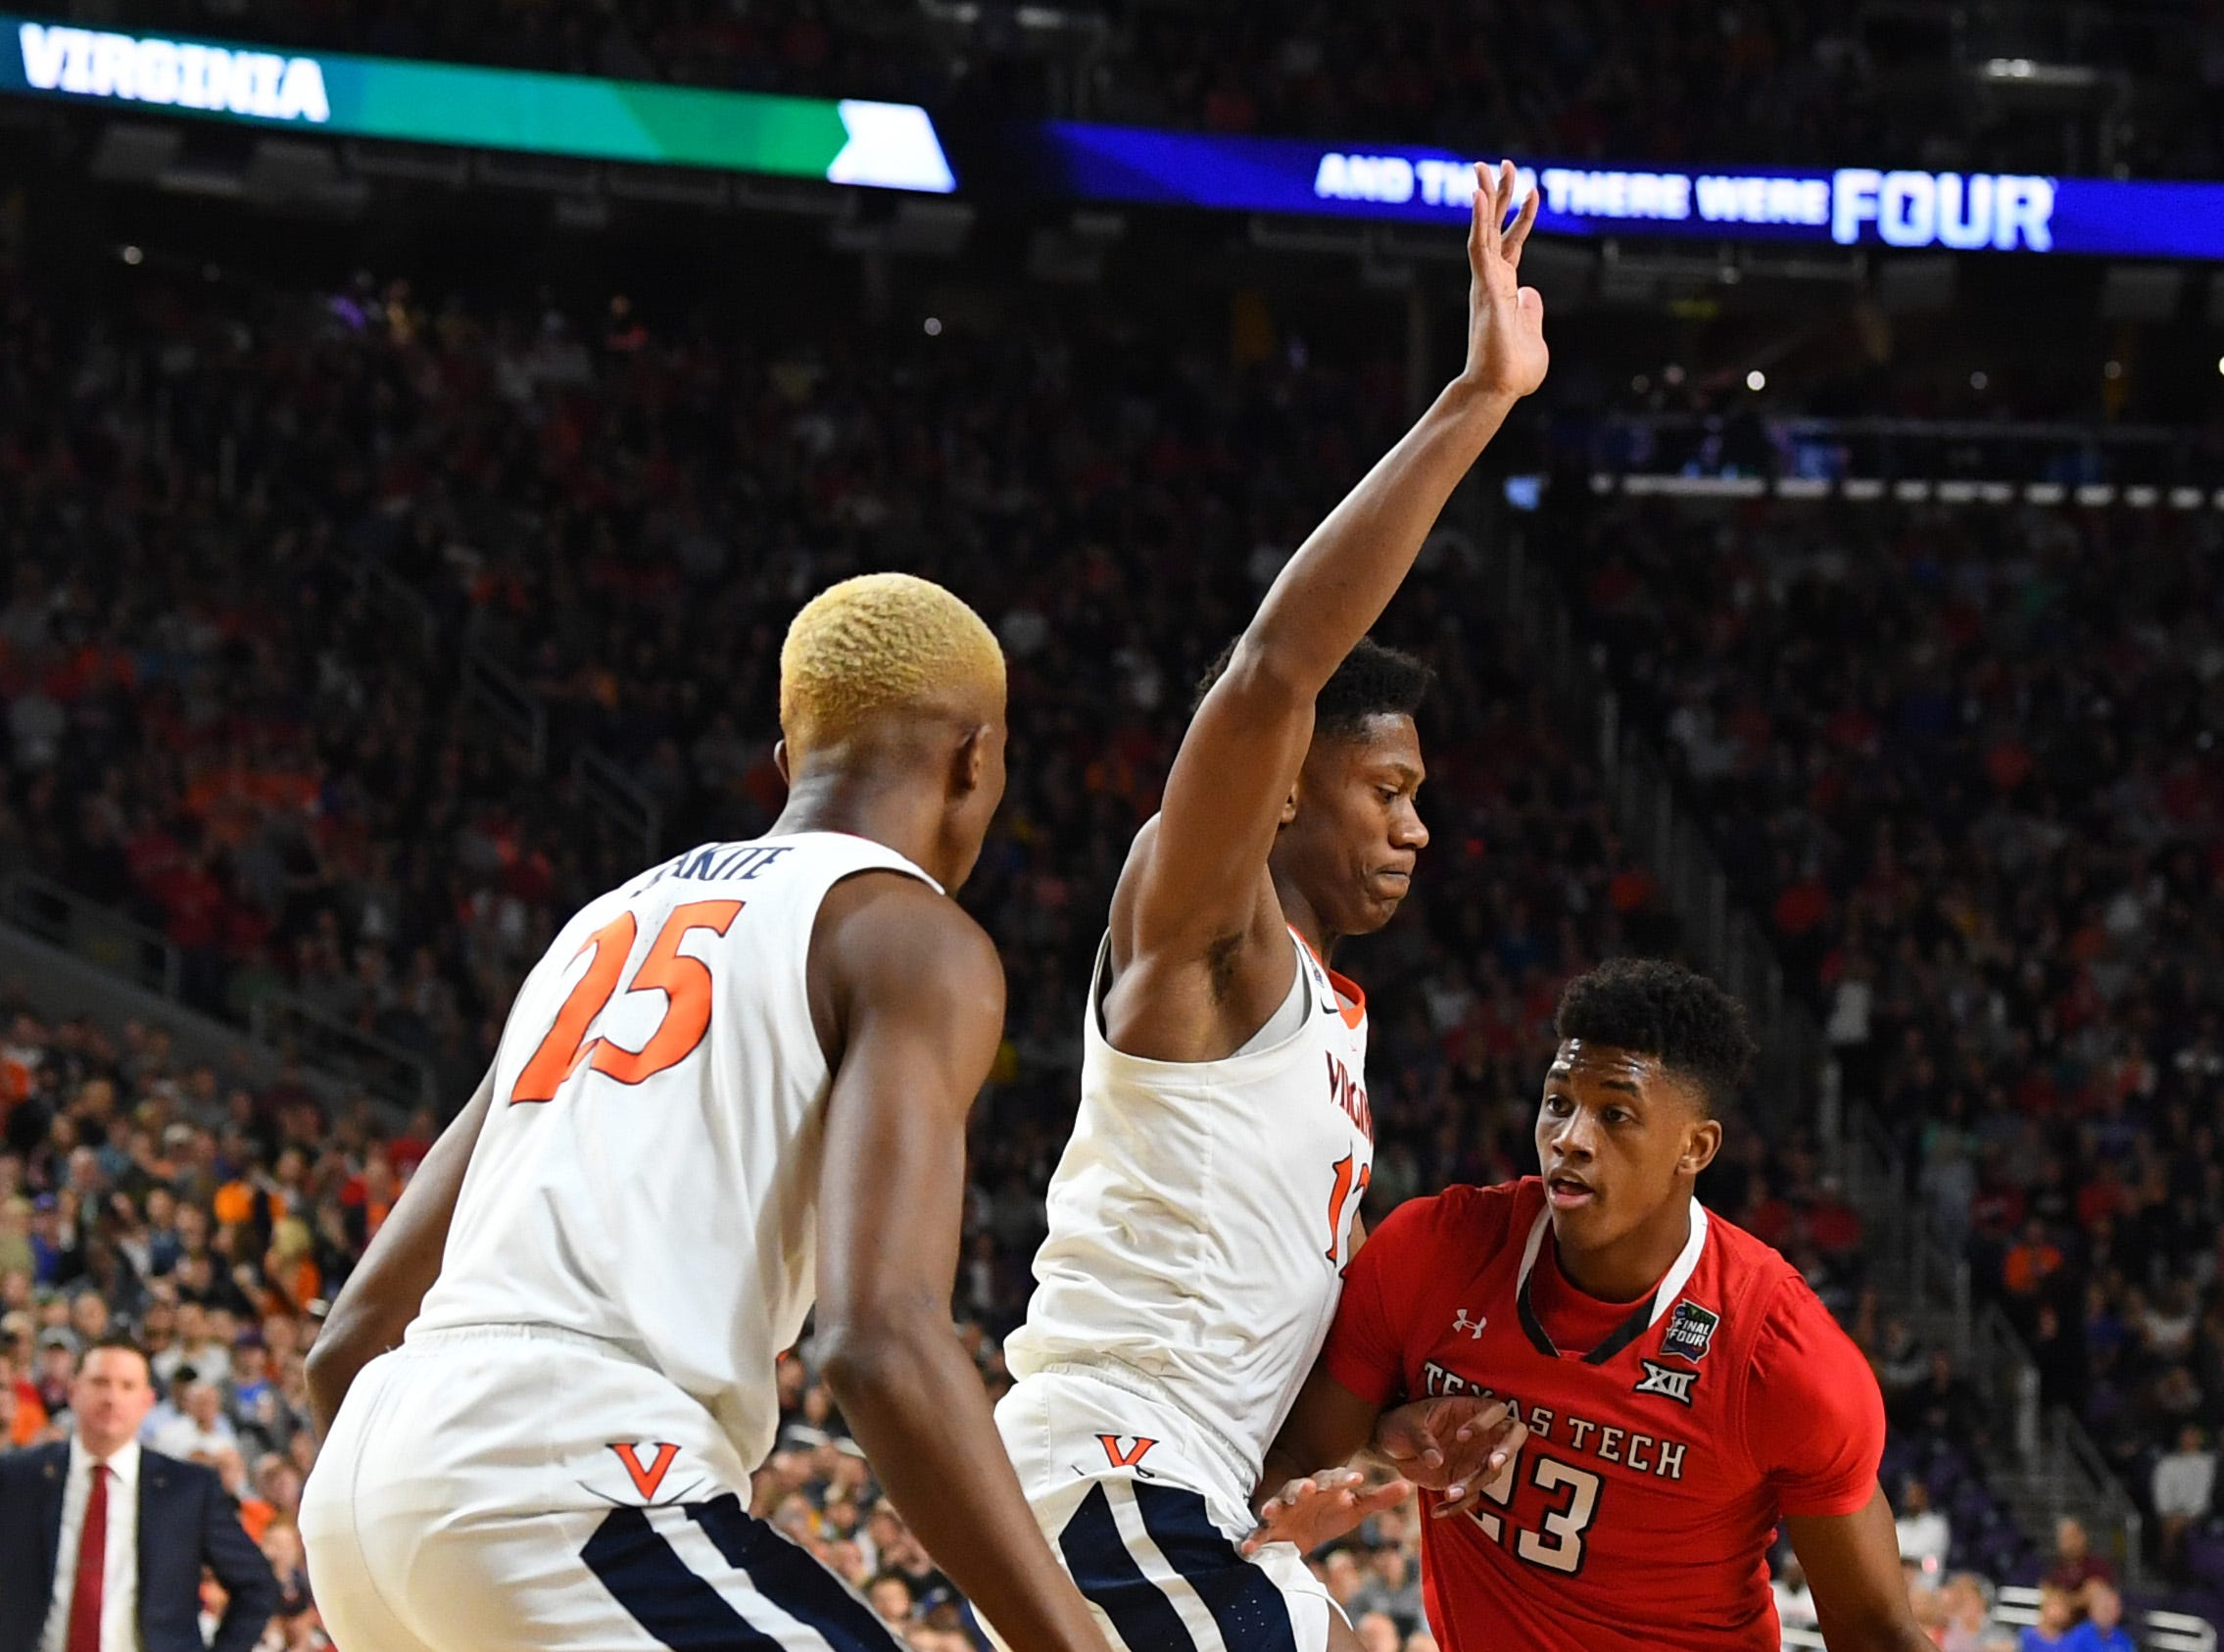 Apr 8, 2019; Minneapolis, MN, USA; Texas Tech Red Raiders guard Jarrett Culver (23) drives to the basket defended by Virginia Cavaliers guard De'Andre Hunter (12) and forward Mamadi Diakite (25) in the championship game of the 2019 men's Final Four at US Bank Stadium. Mandatory Credit: Robert Deutsch-USA TODAY Sports